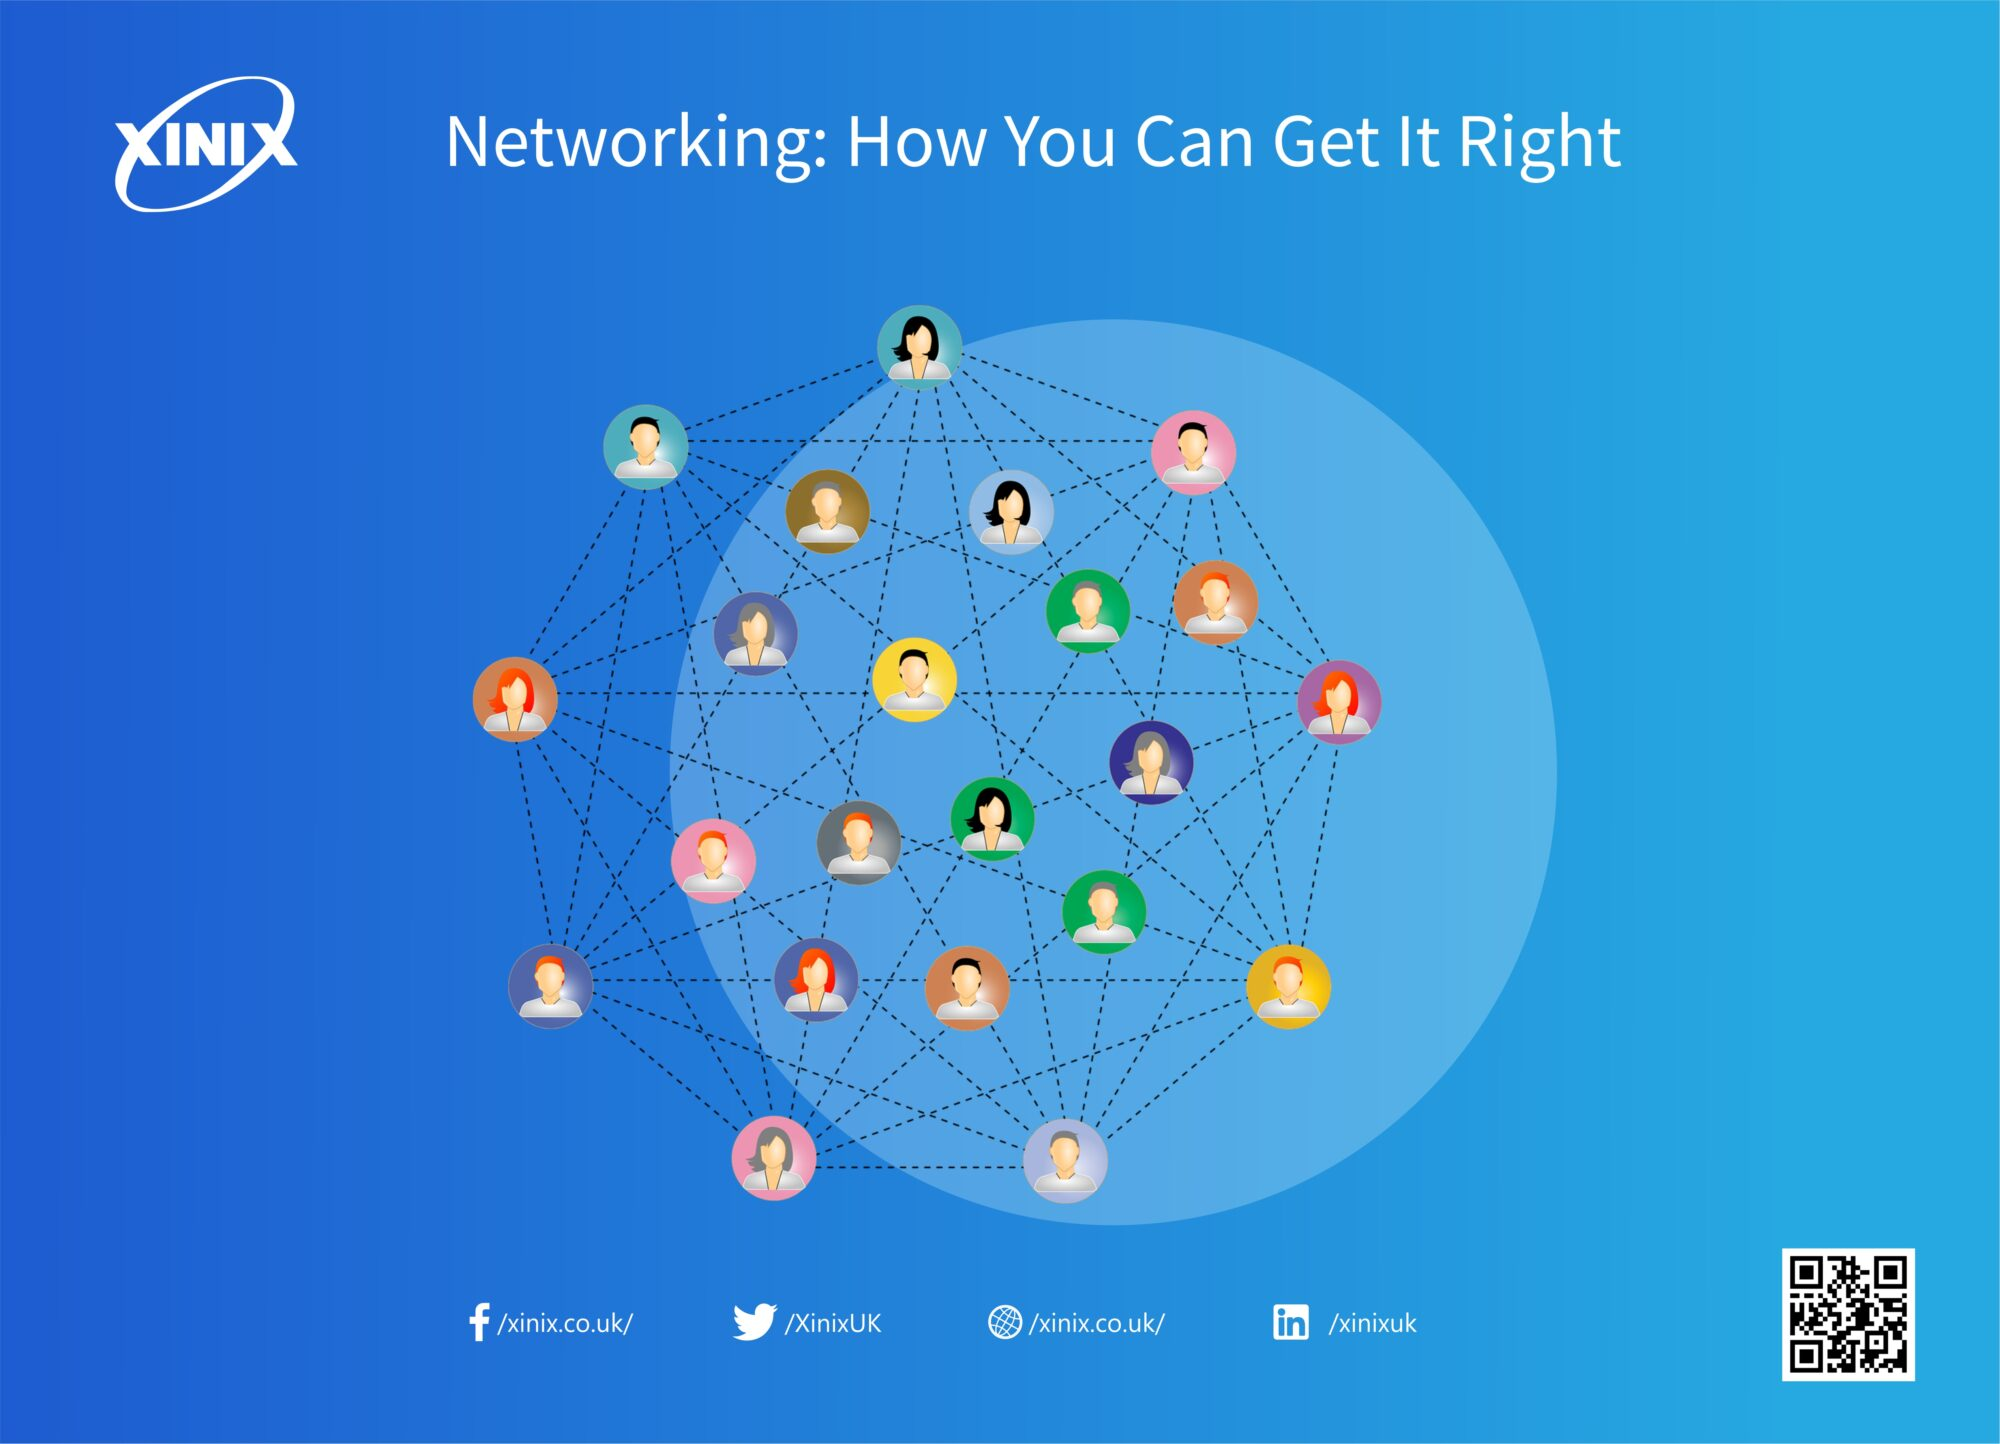 Networking: How You Can Get It Right